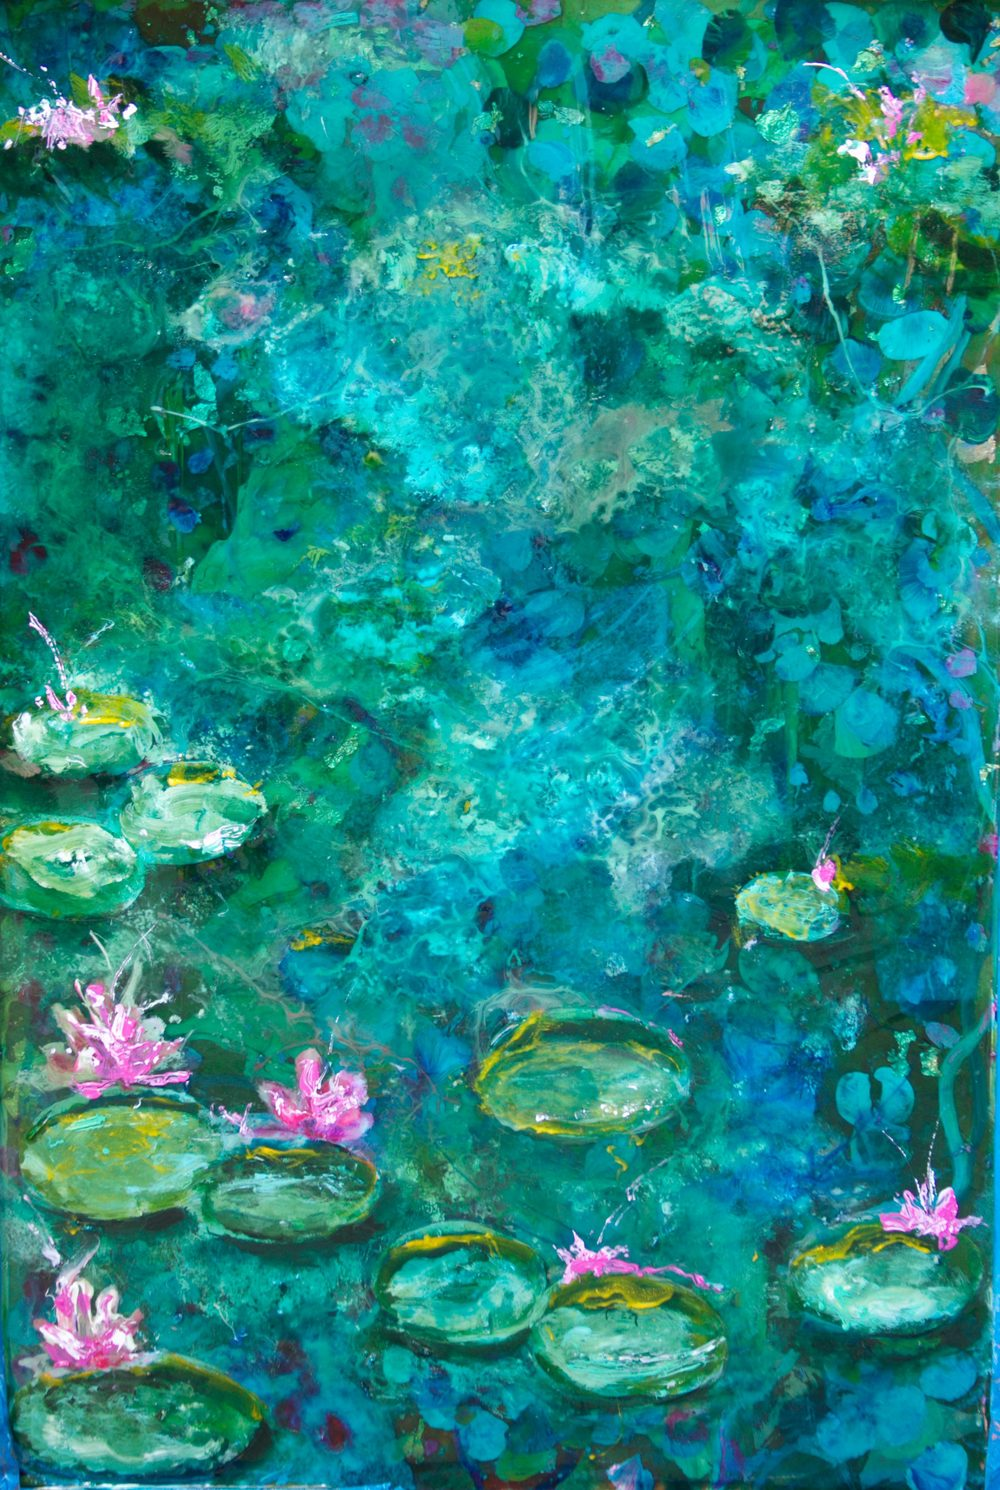 """Lotus Pond""                                                                                              30 x 40"" acrylic & resin on canvas- SOLD"